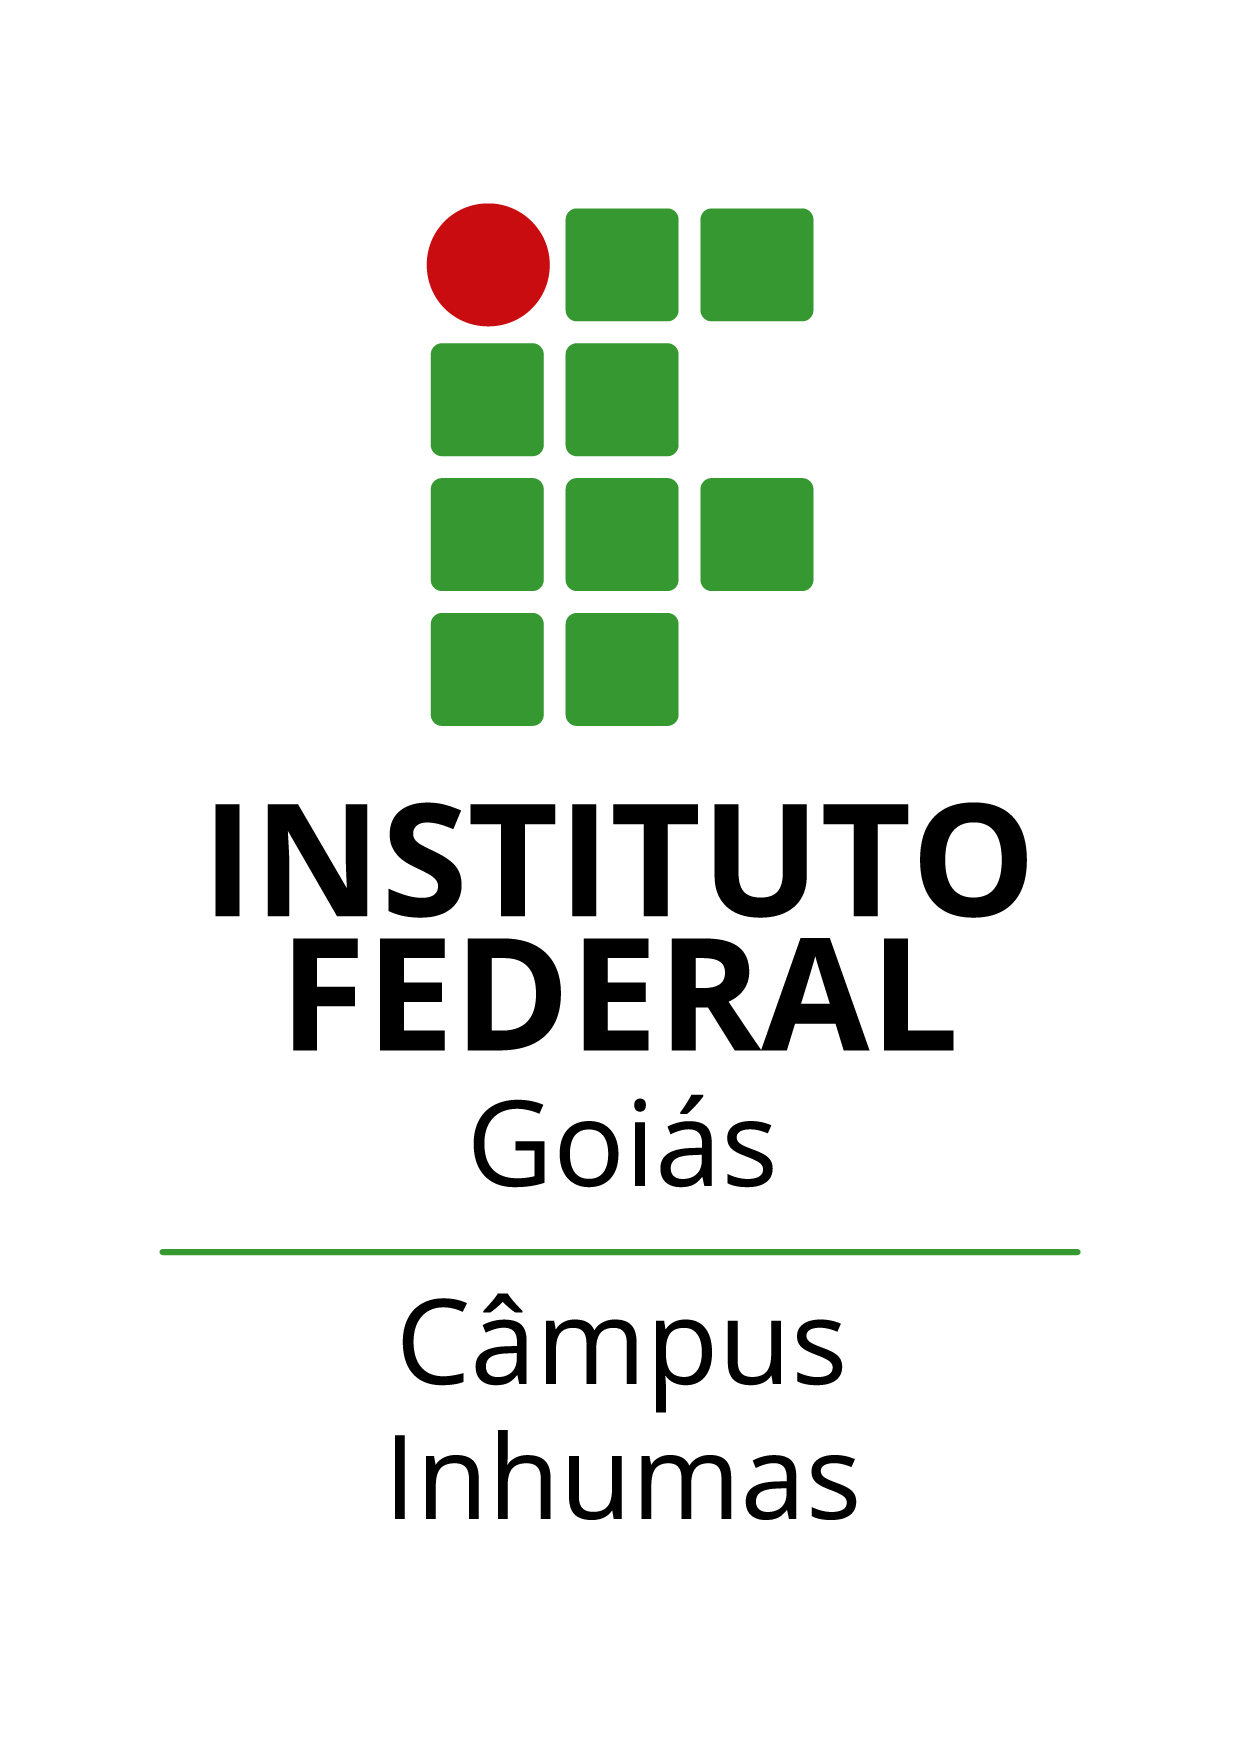 Logo do IFG - Câmpus Inhumas